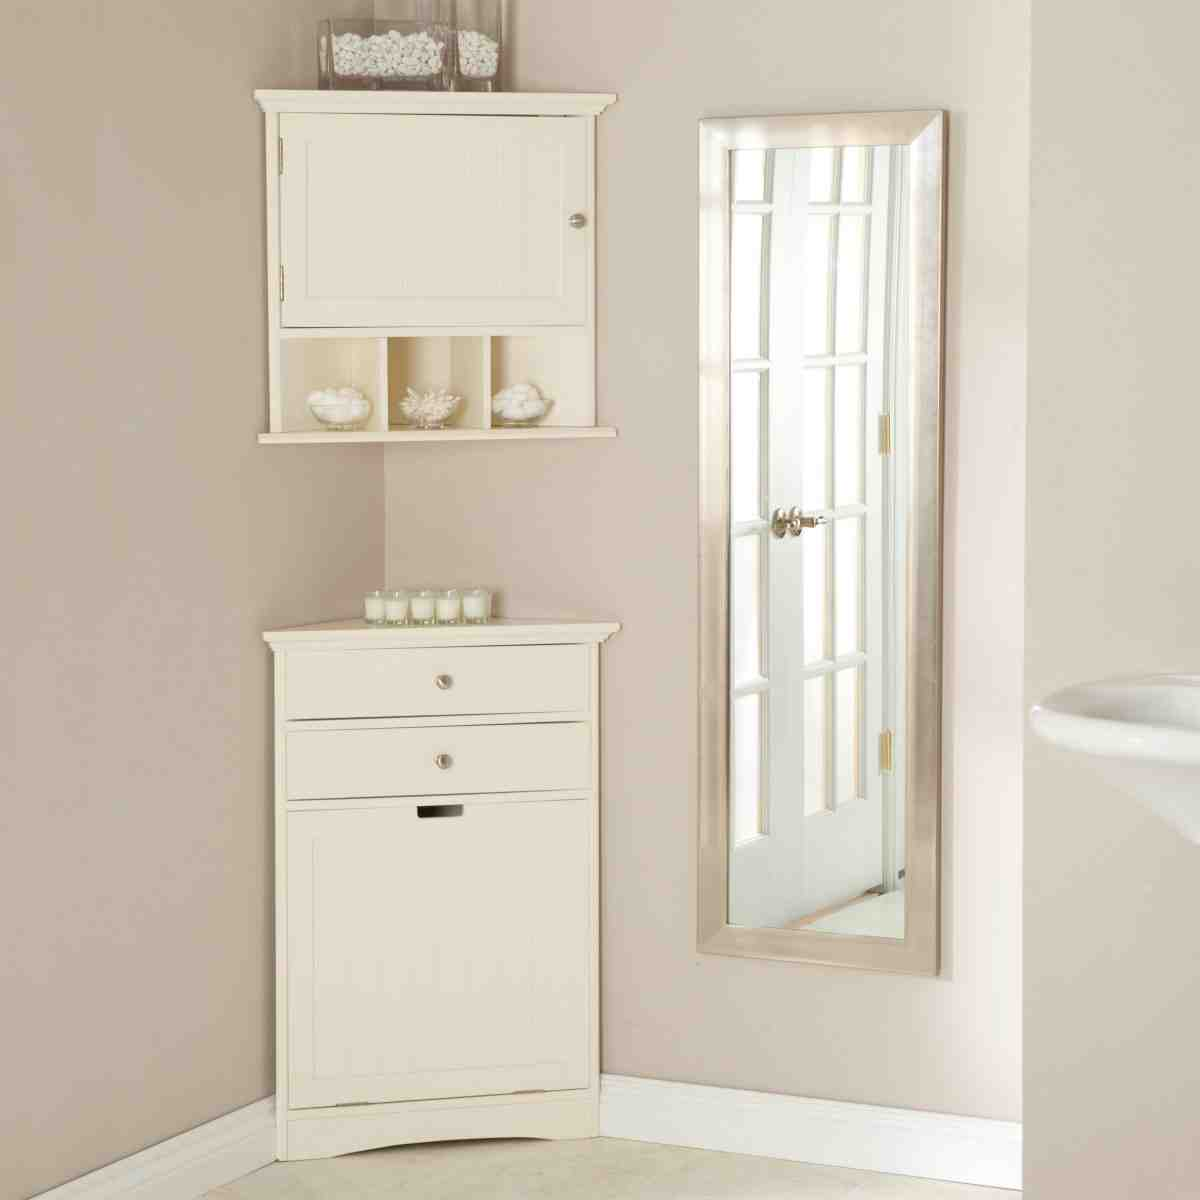 Bathroom Corner Cabinets With Mirror